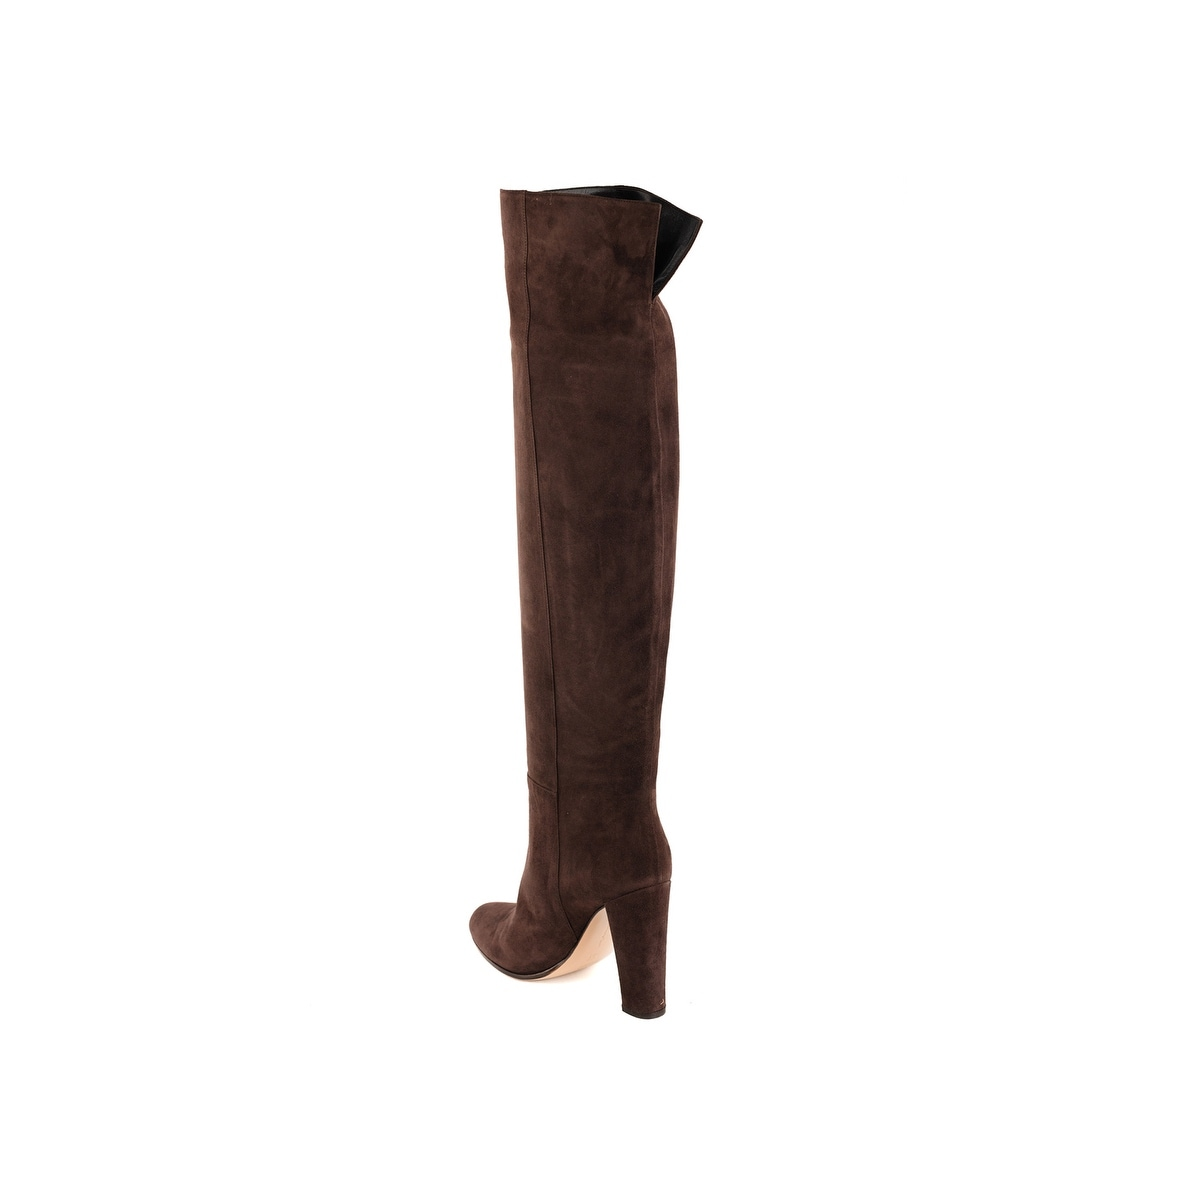 bc4c2208704e Shop Gianvito Rossi Womens Dark Brown Suede Over the Knee Boots ...